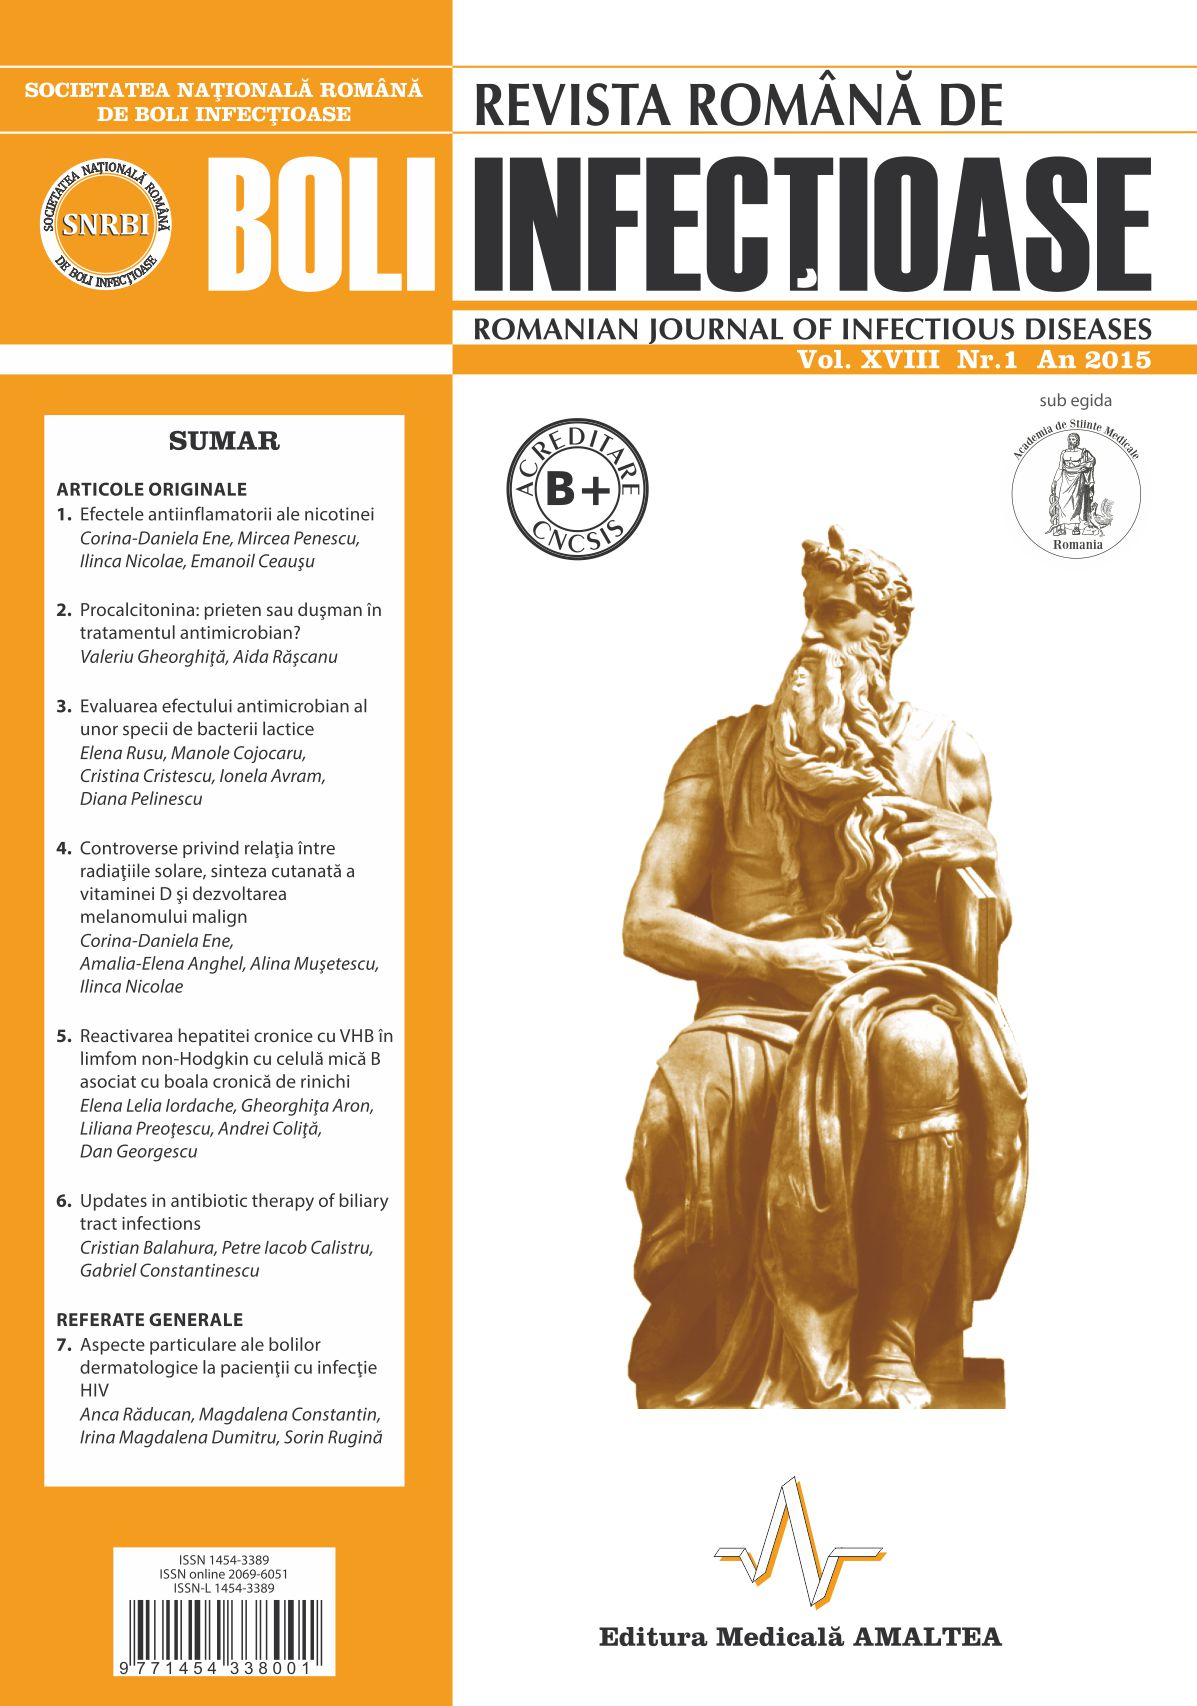 Revista Romana de Boli Infectioase | Vol. XVIII, No. 1, 2015